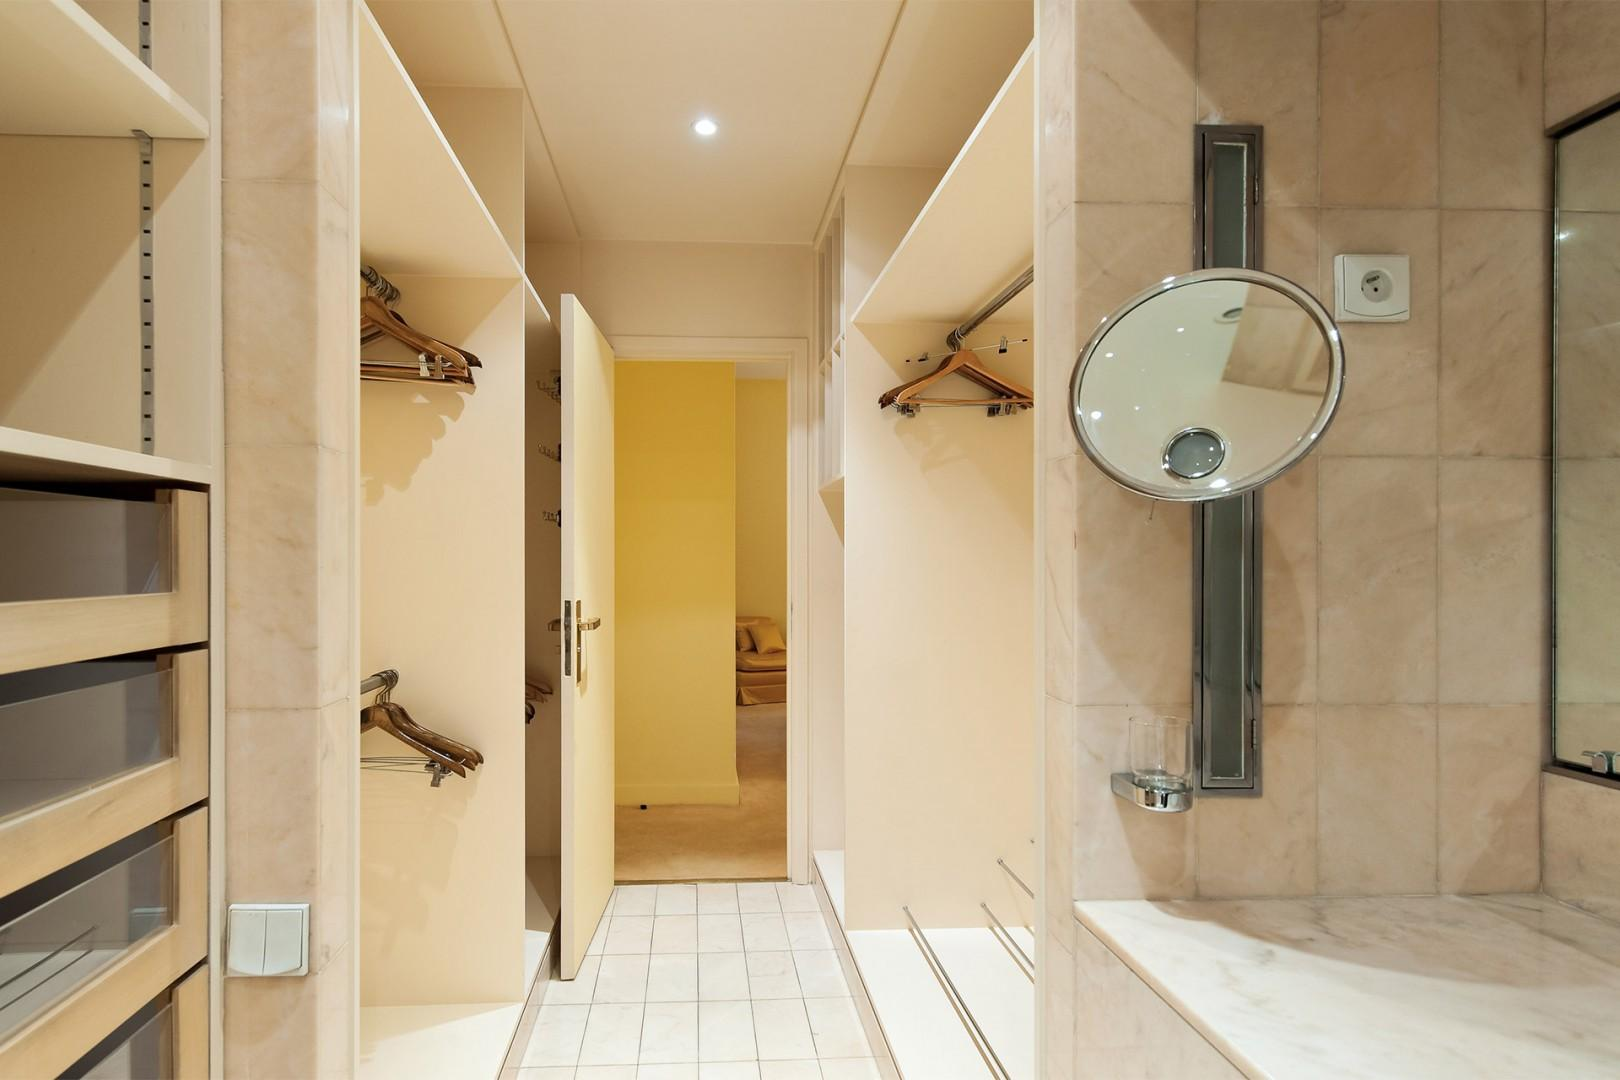 There is a convenient dressing room between bedroom 1 and bathroom 1.